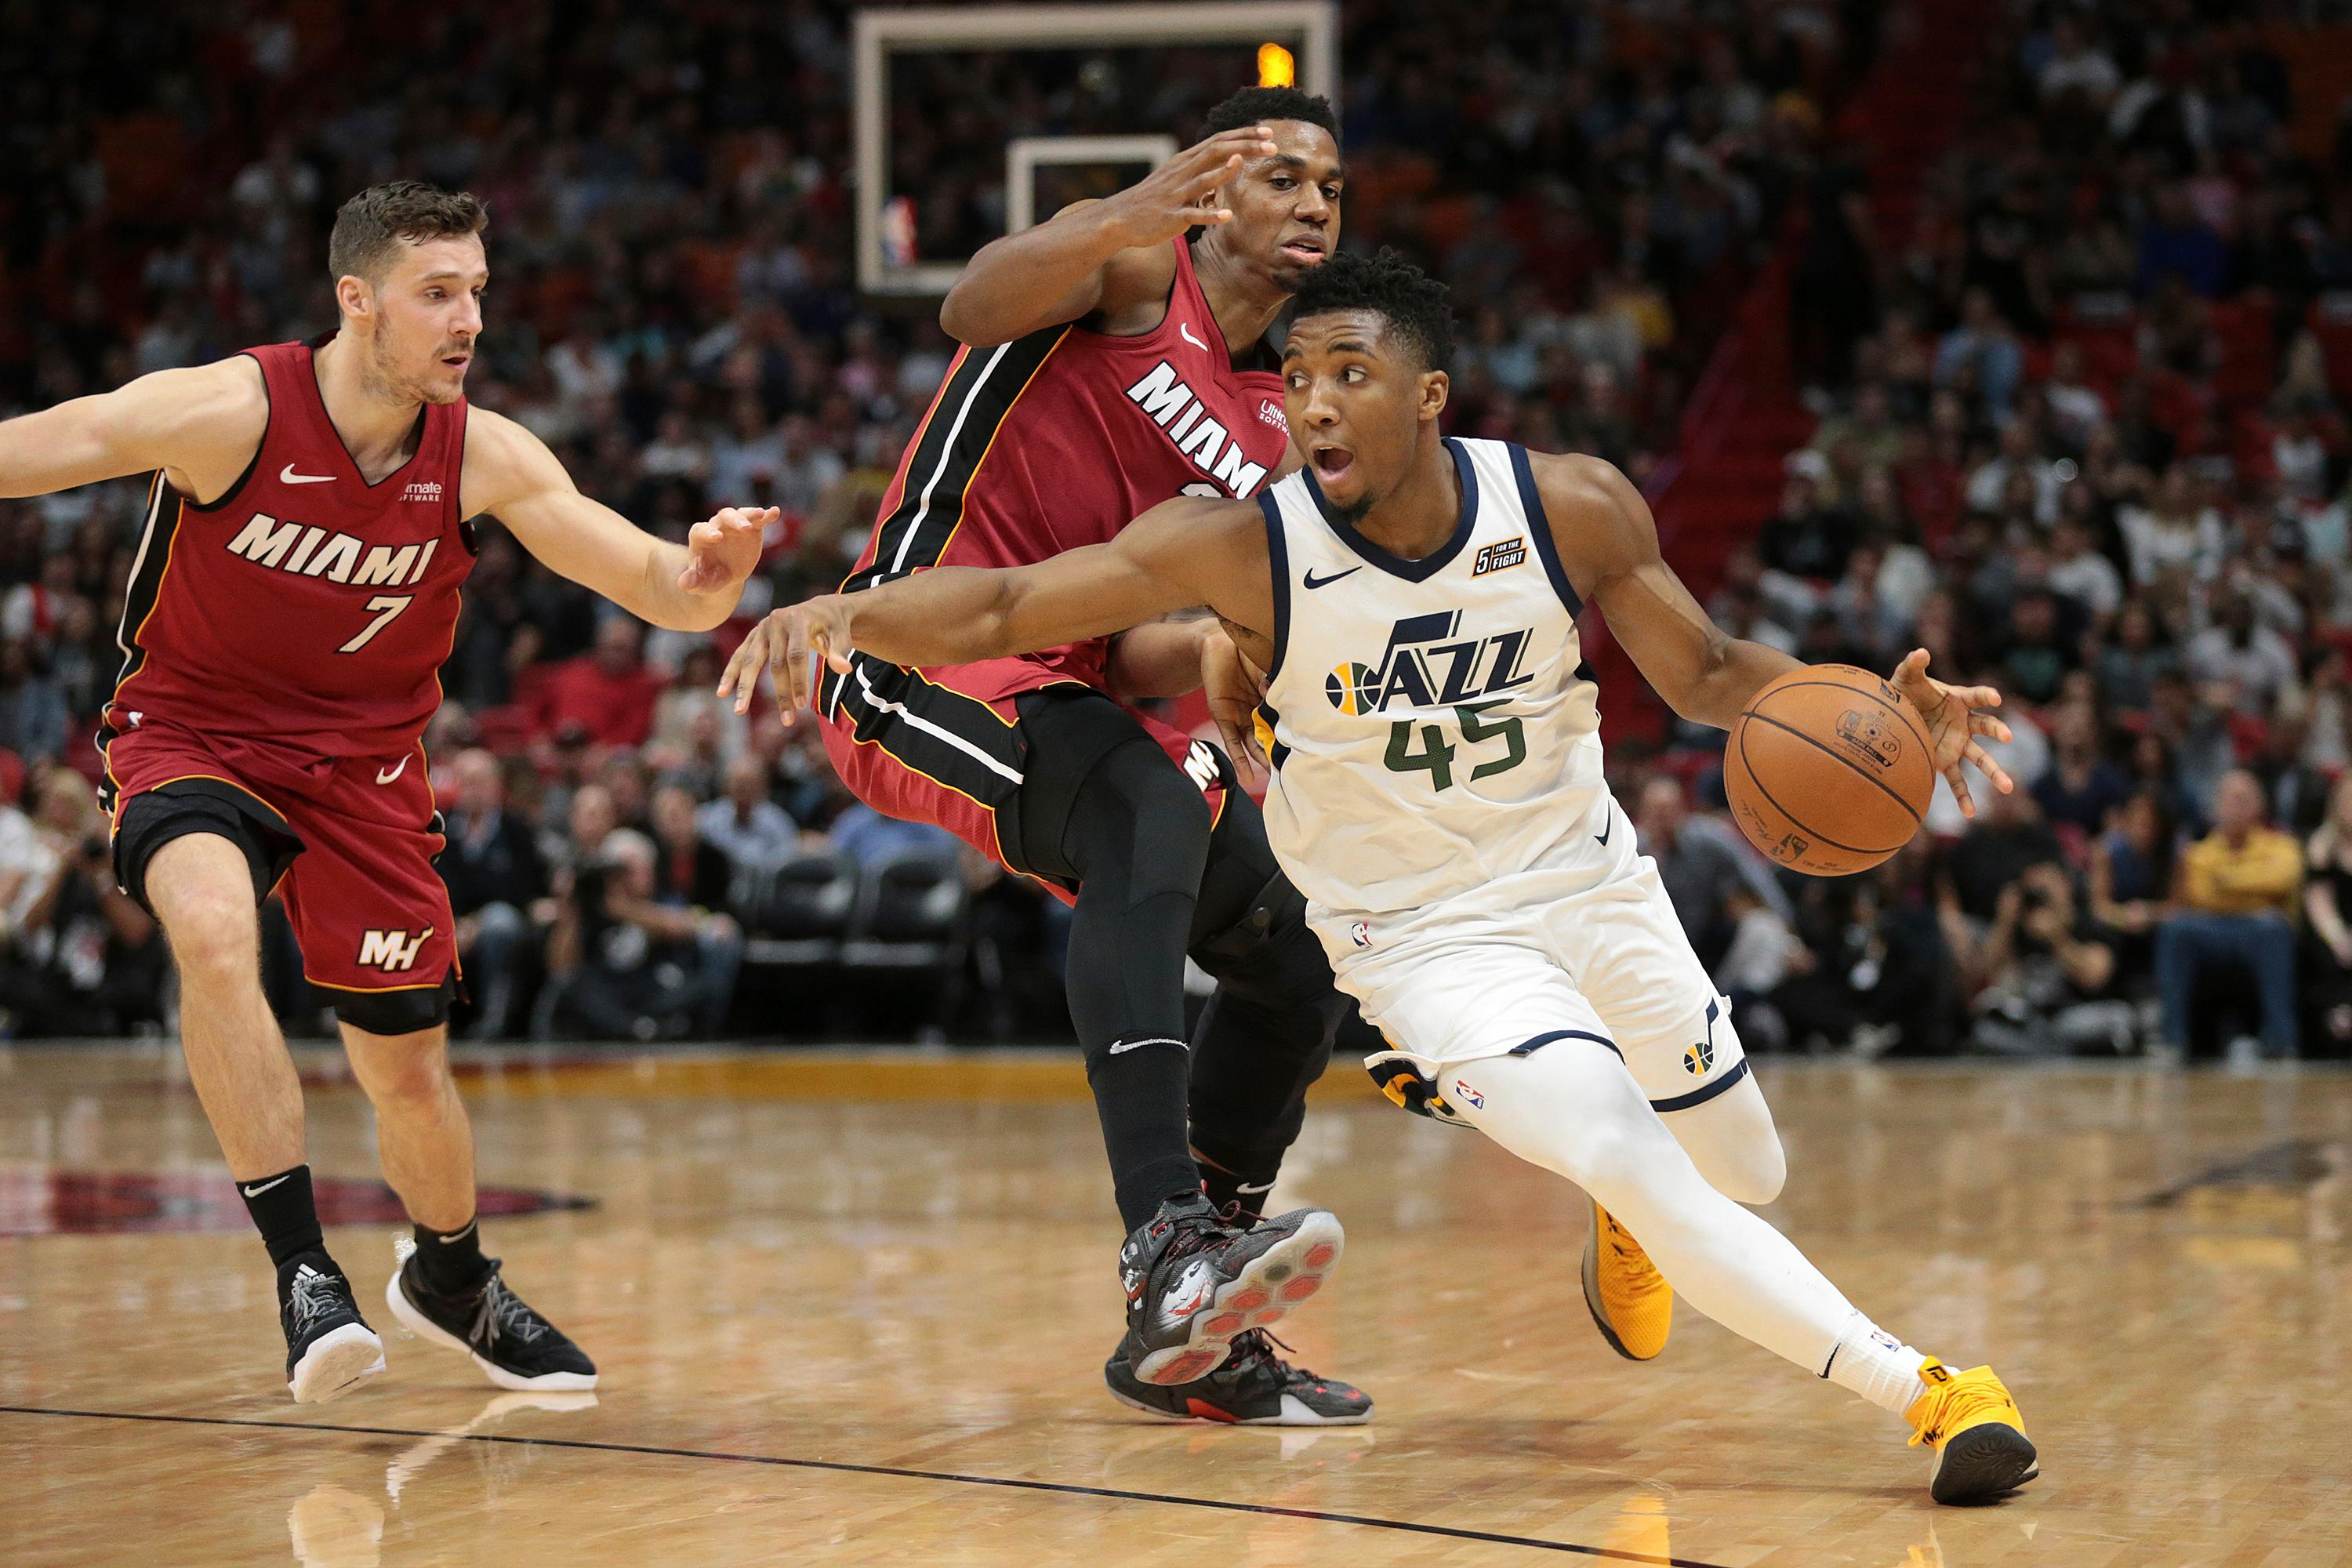 Utah Jazz guard Donovan Mitchell (45) drives to the basket past Miami Heat guard Goran Dragic (7) and center Hassan Whiteside (21) during the second half of an NBA basketball game, Sunday, Jan. 7, 2018, in Miami. (AP Photo/Joel Auerbach)